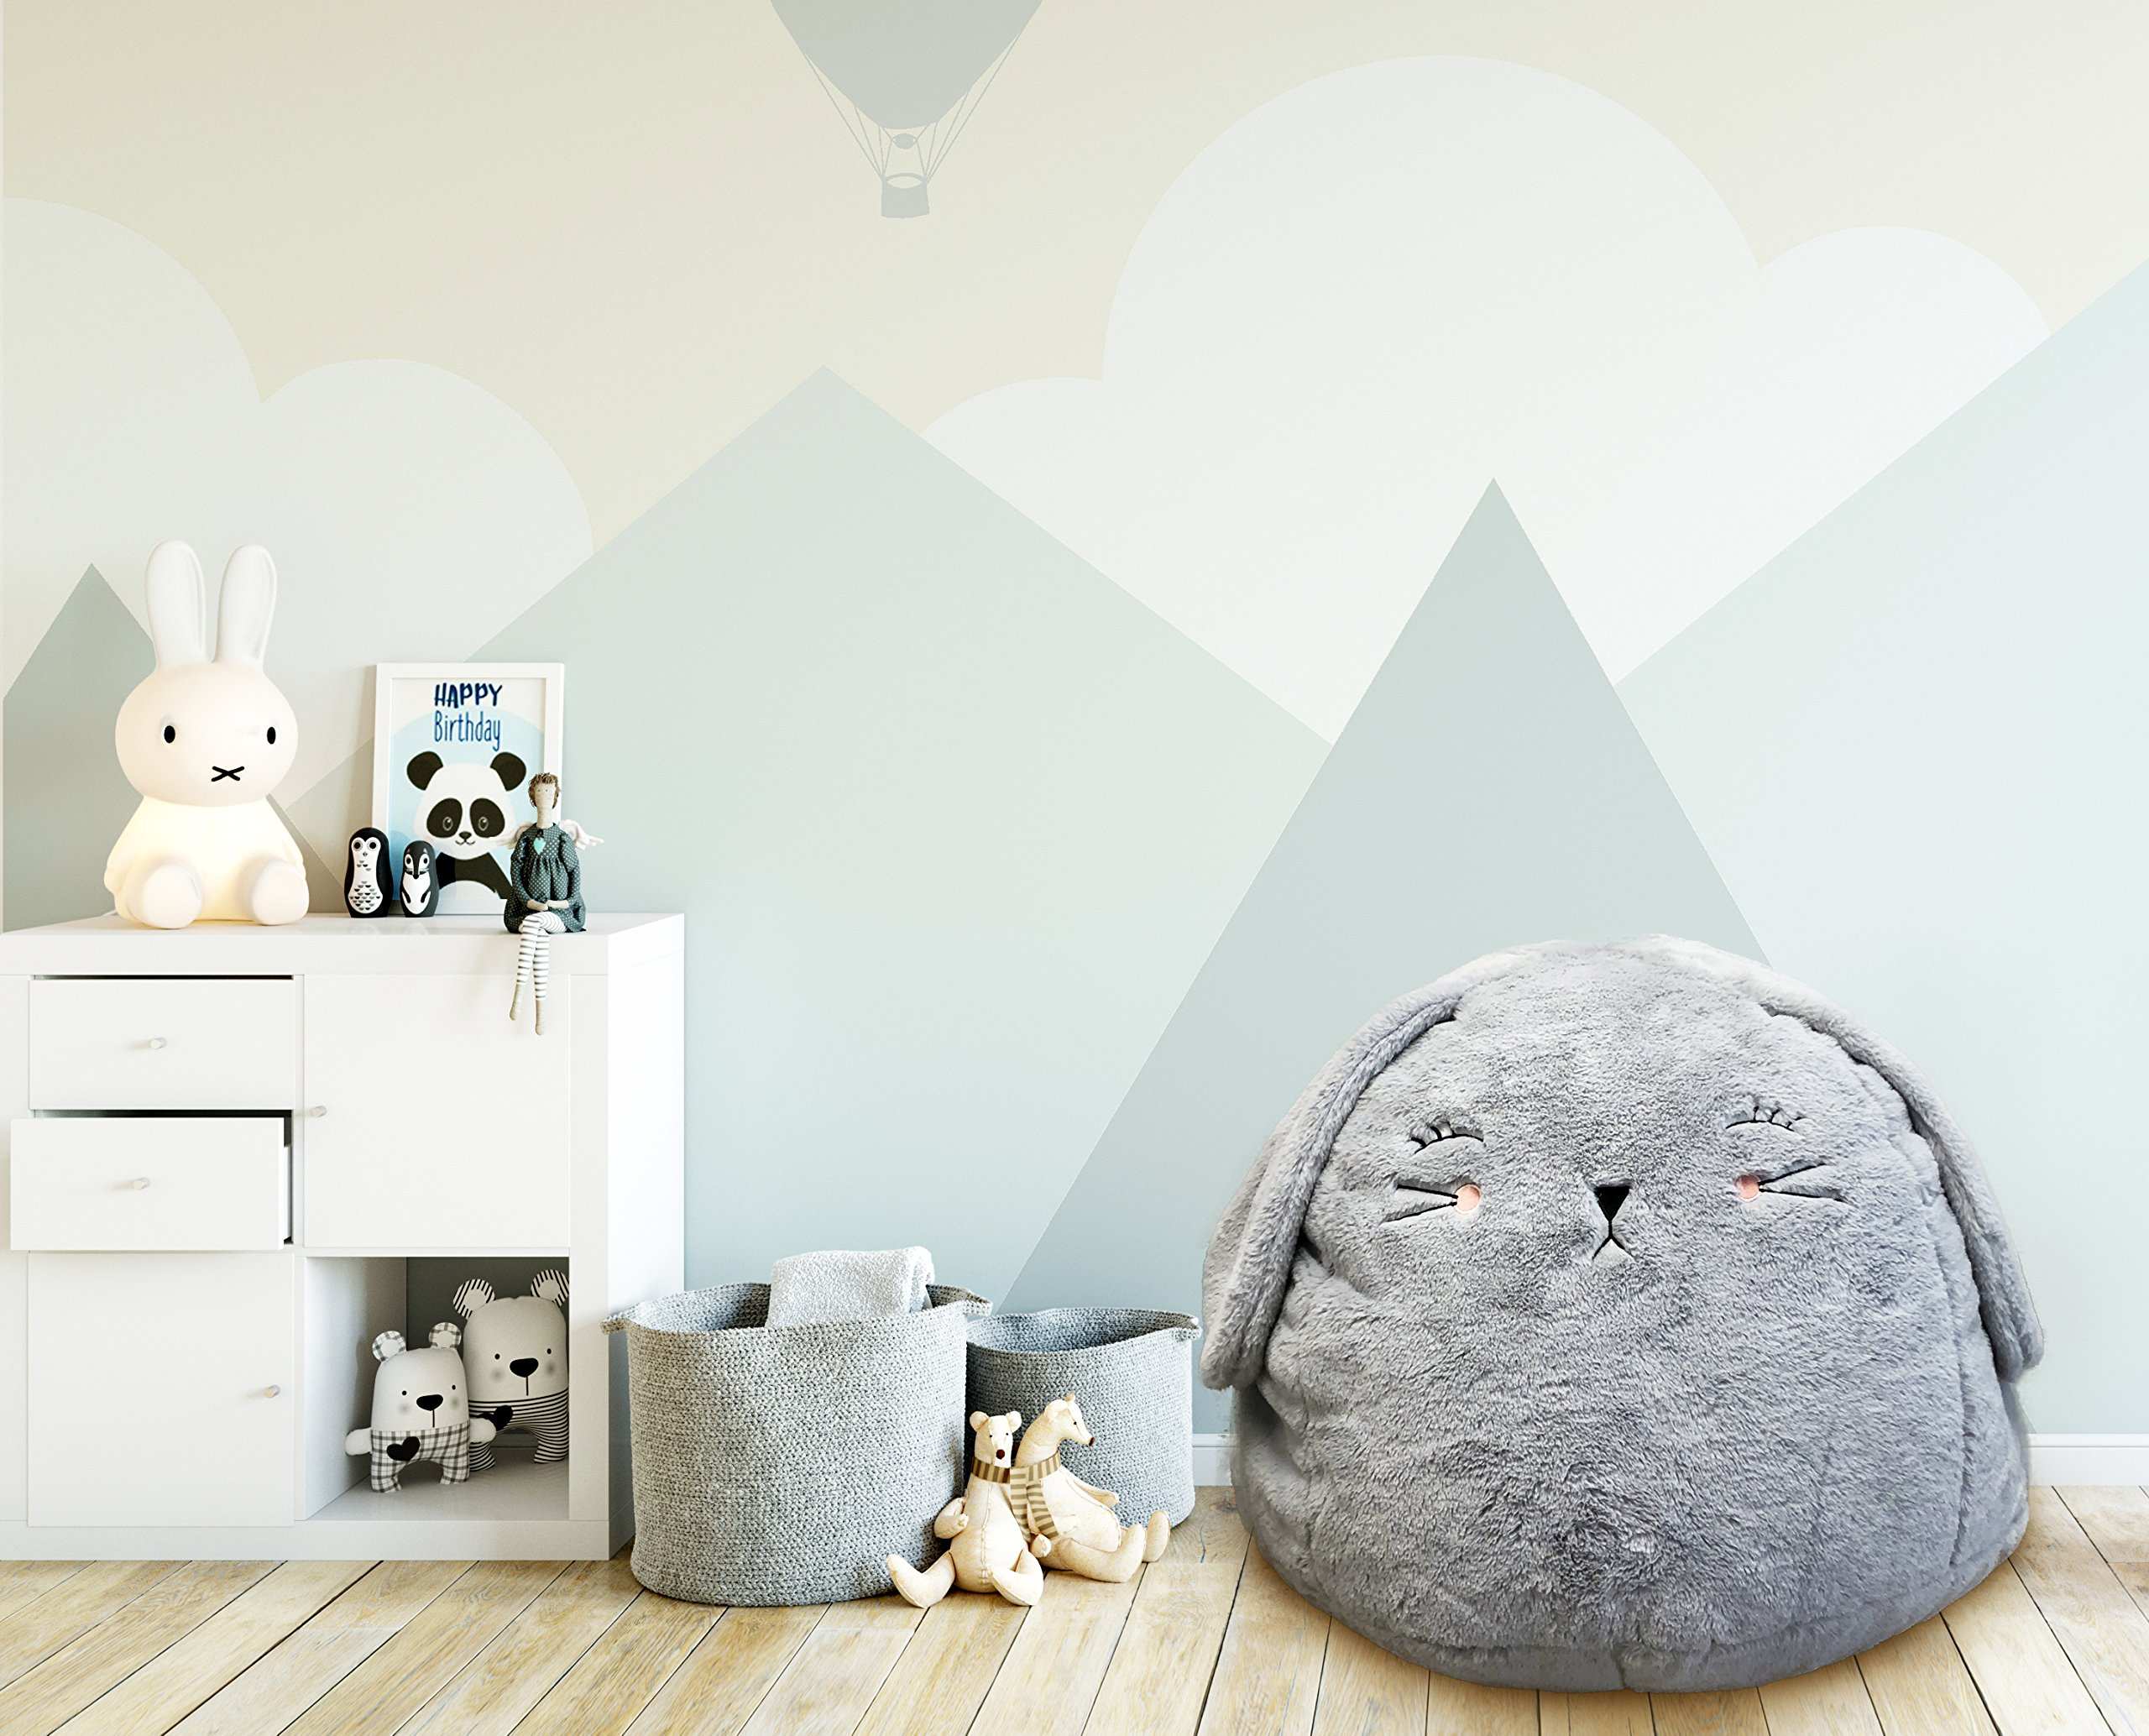 Beanbag For Kids: Soft And Comfortable Stuffed Bean Bag Chair For The Nursery, Cute Animal Design For Boys And Girls, Lux Plush Fabric, For Children Of All Ages 30'' x 30'' x 20'' (Fur Bunny)